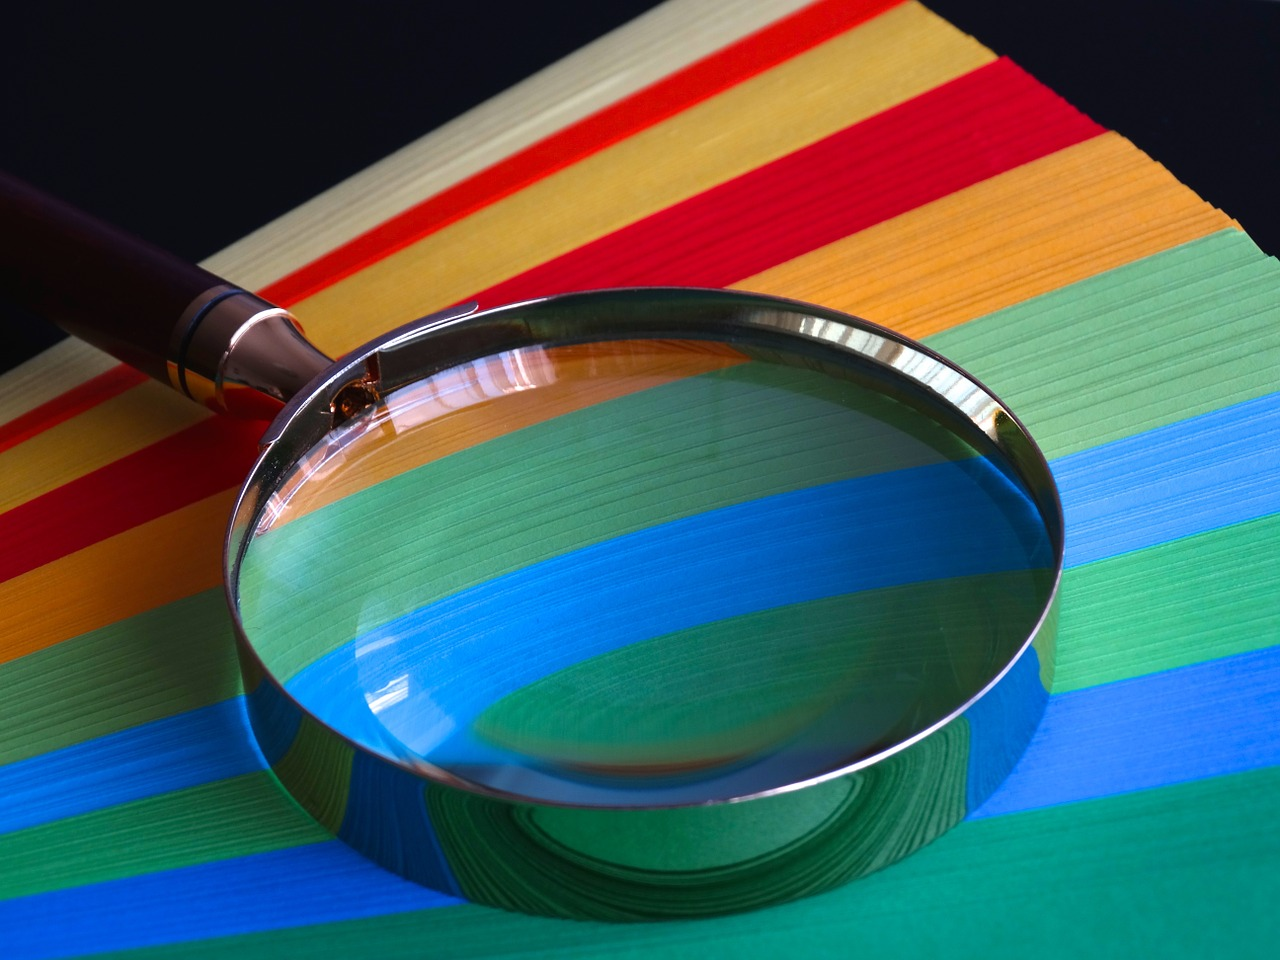 Magnifying glass with colored papers